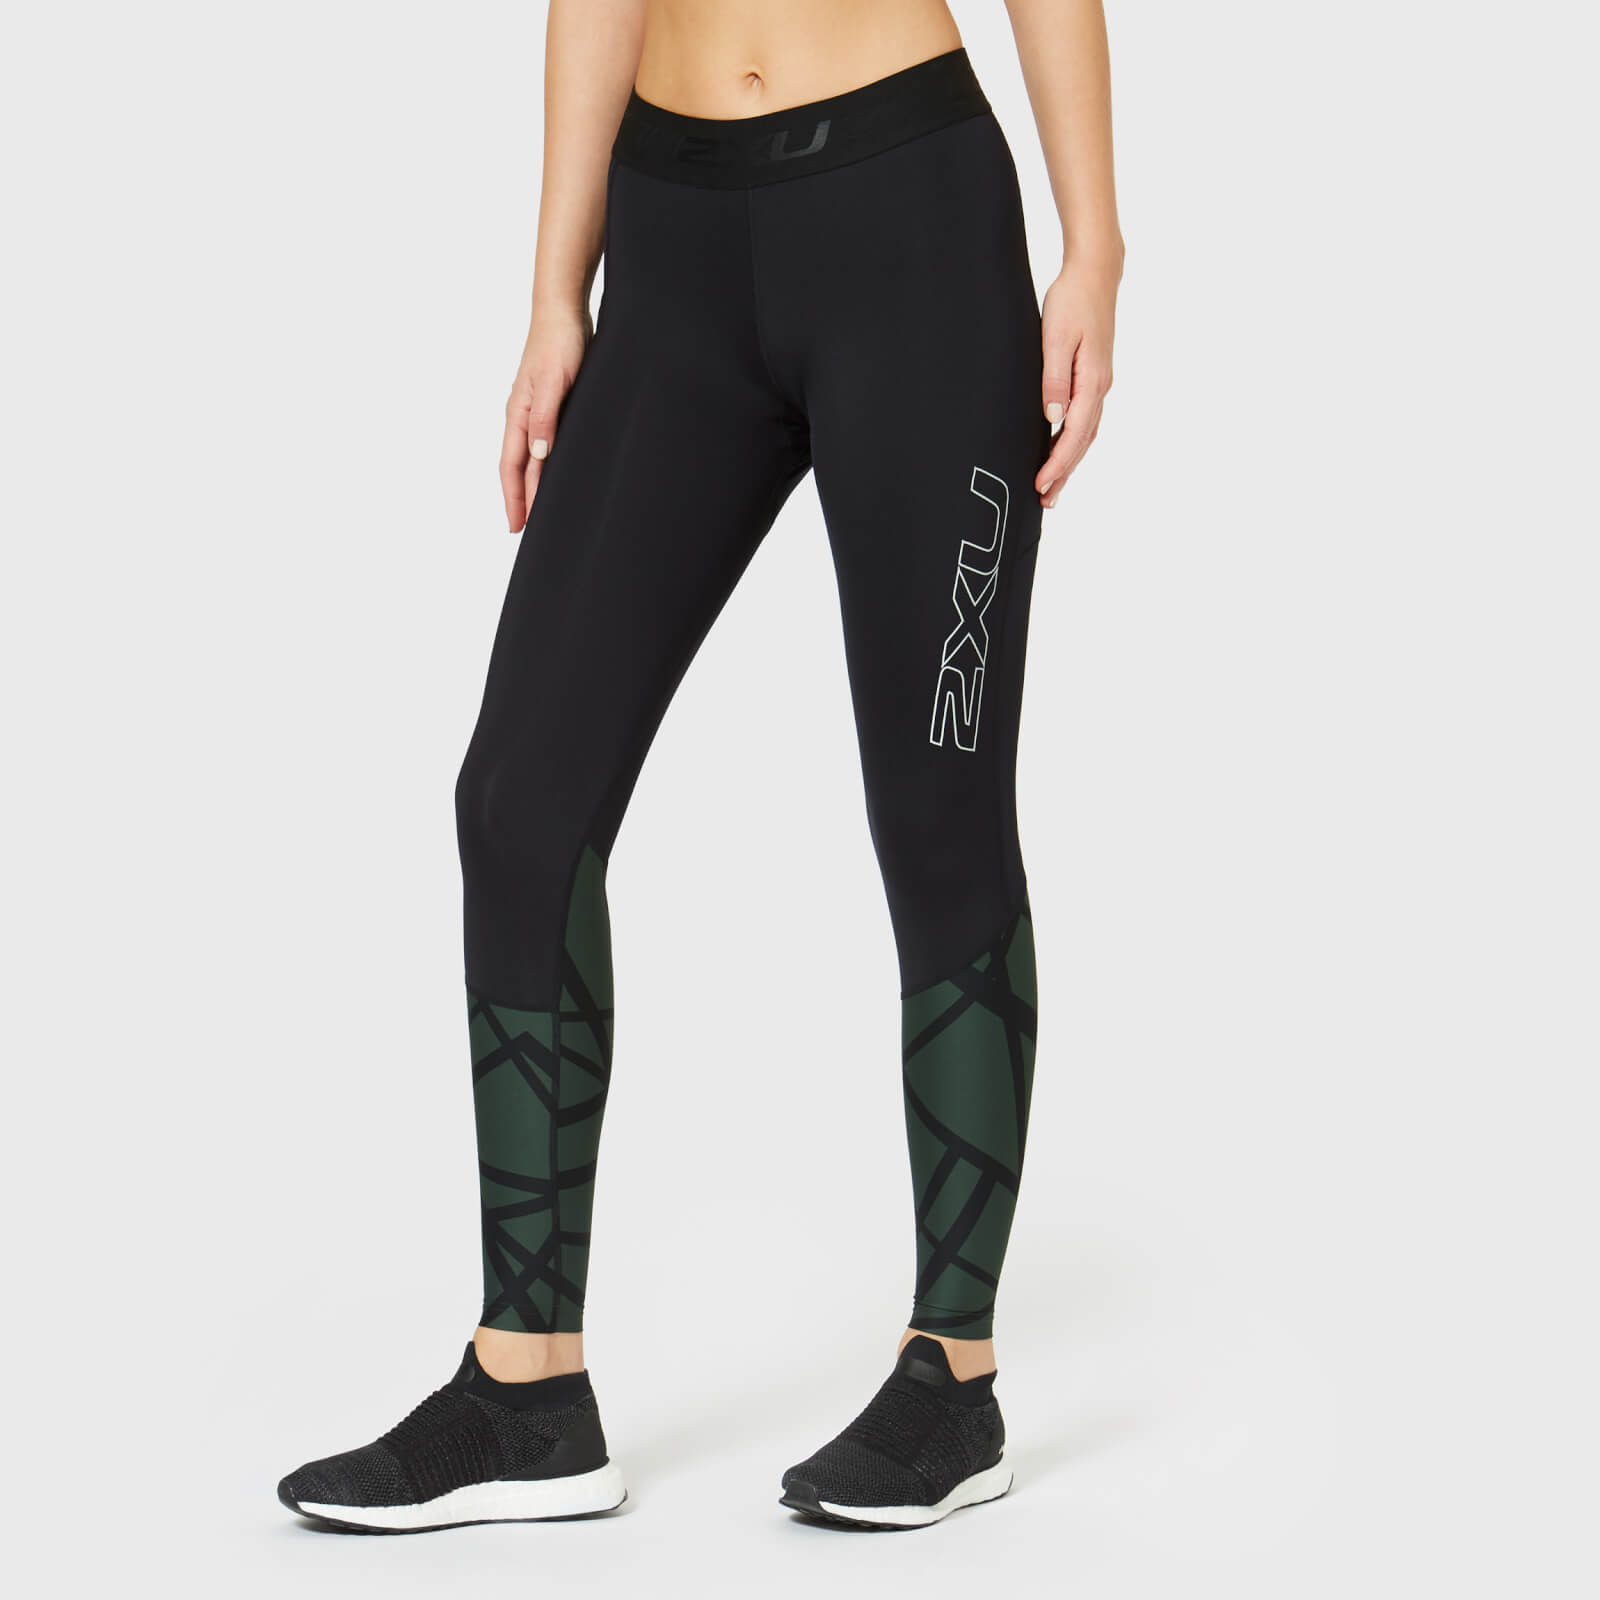 a28858a6e0 2XU Women's Accelerate Compression Tights with Storage - Black Clothing    TheHut.com